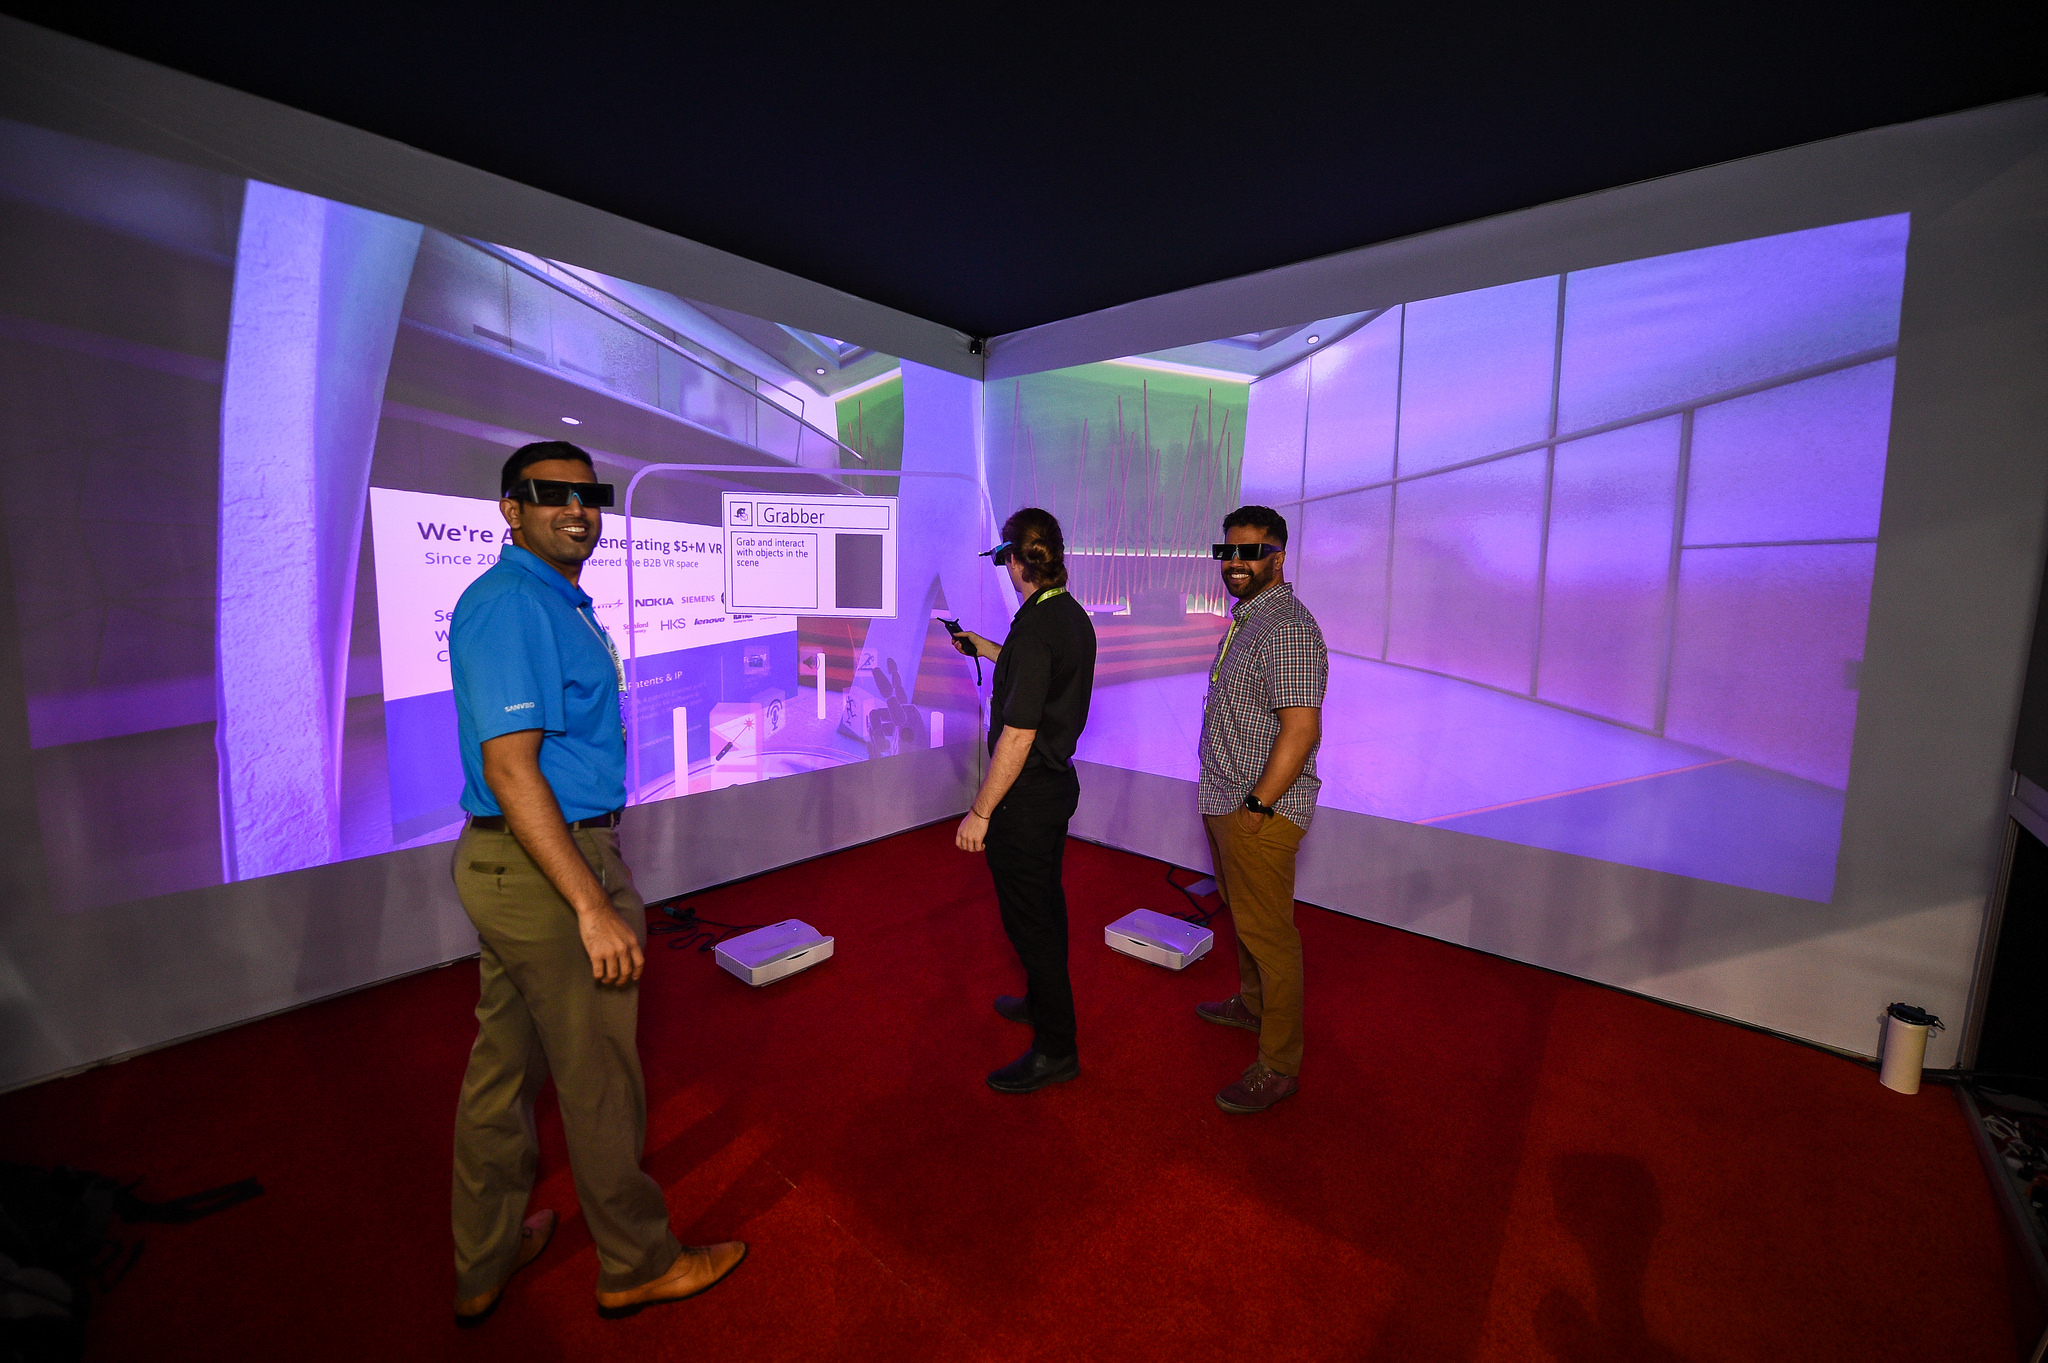 The BIM cave gave users a chance to explore BIM technology in virtual reality.